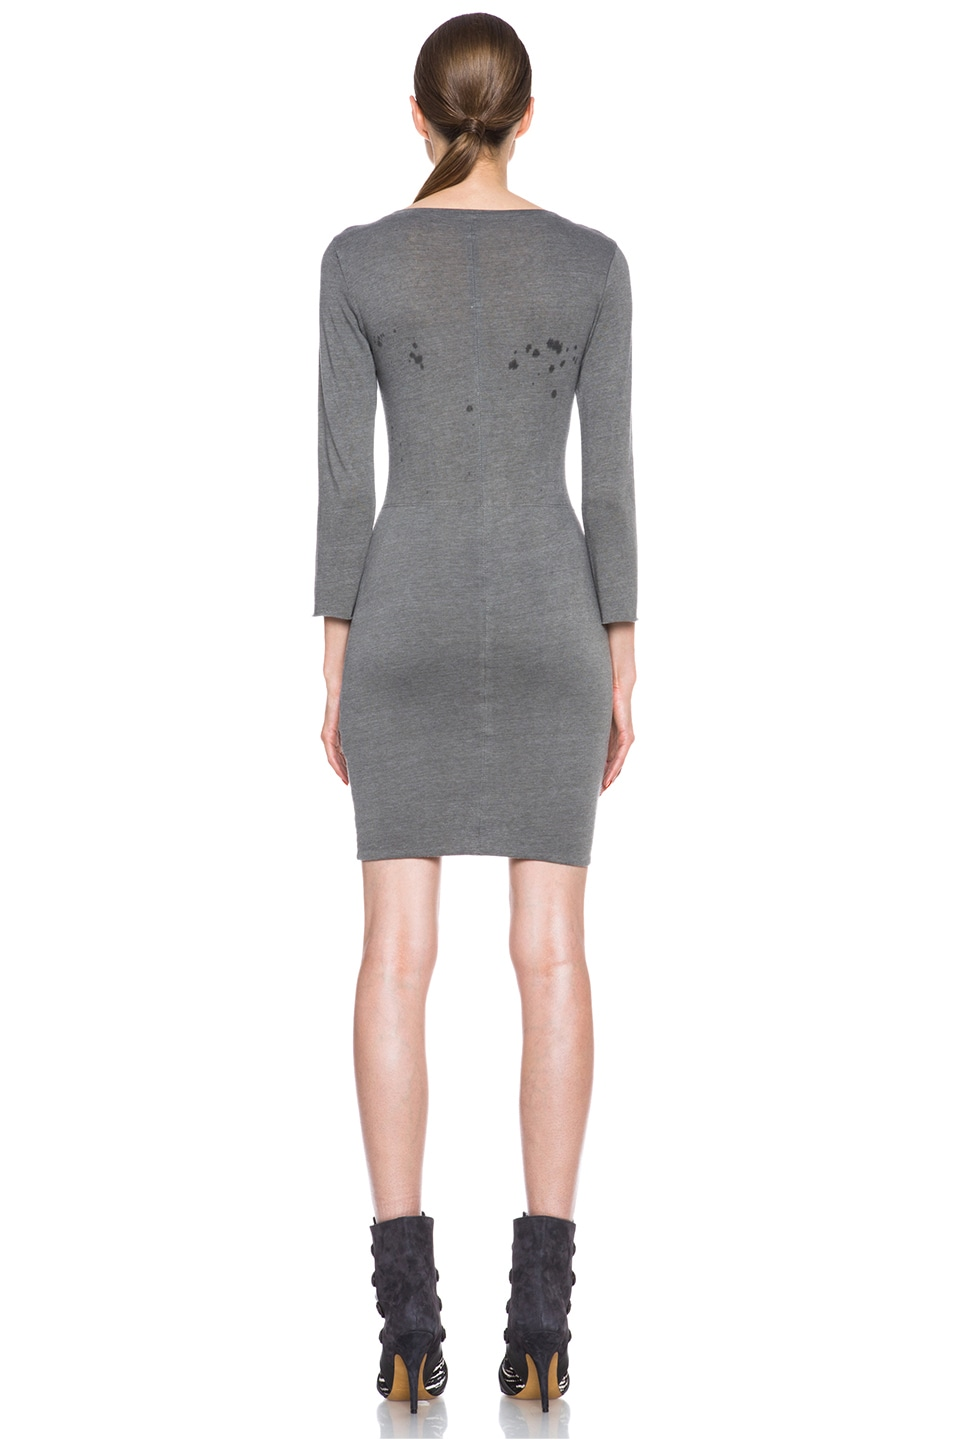 Image 4 of Raquel Allegra Deconstructed Jersey Dress in Stardust Ash Grey